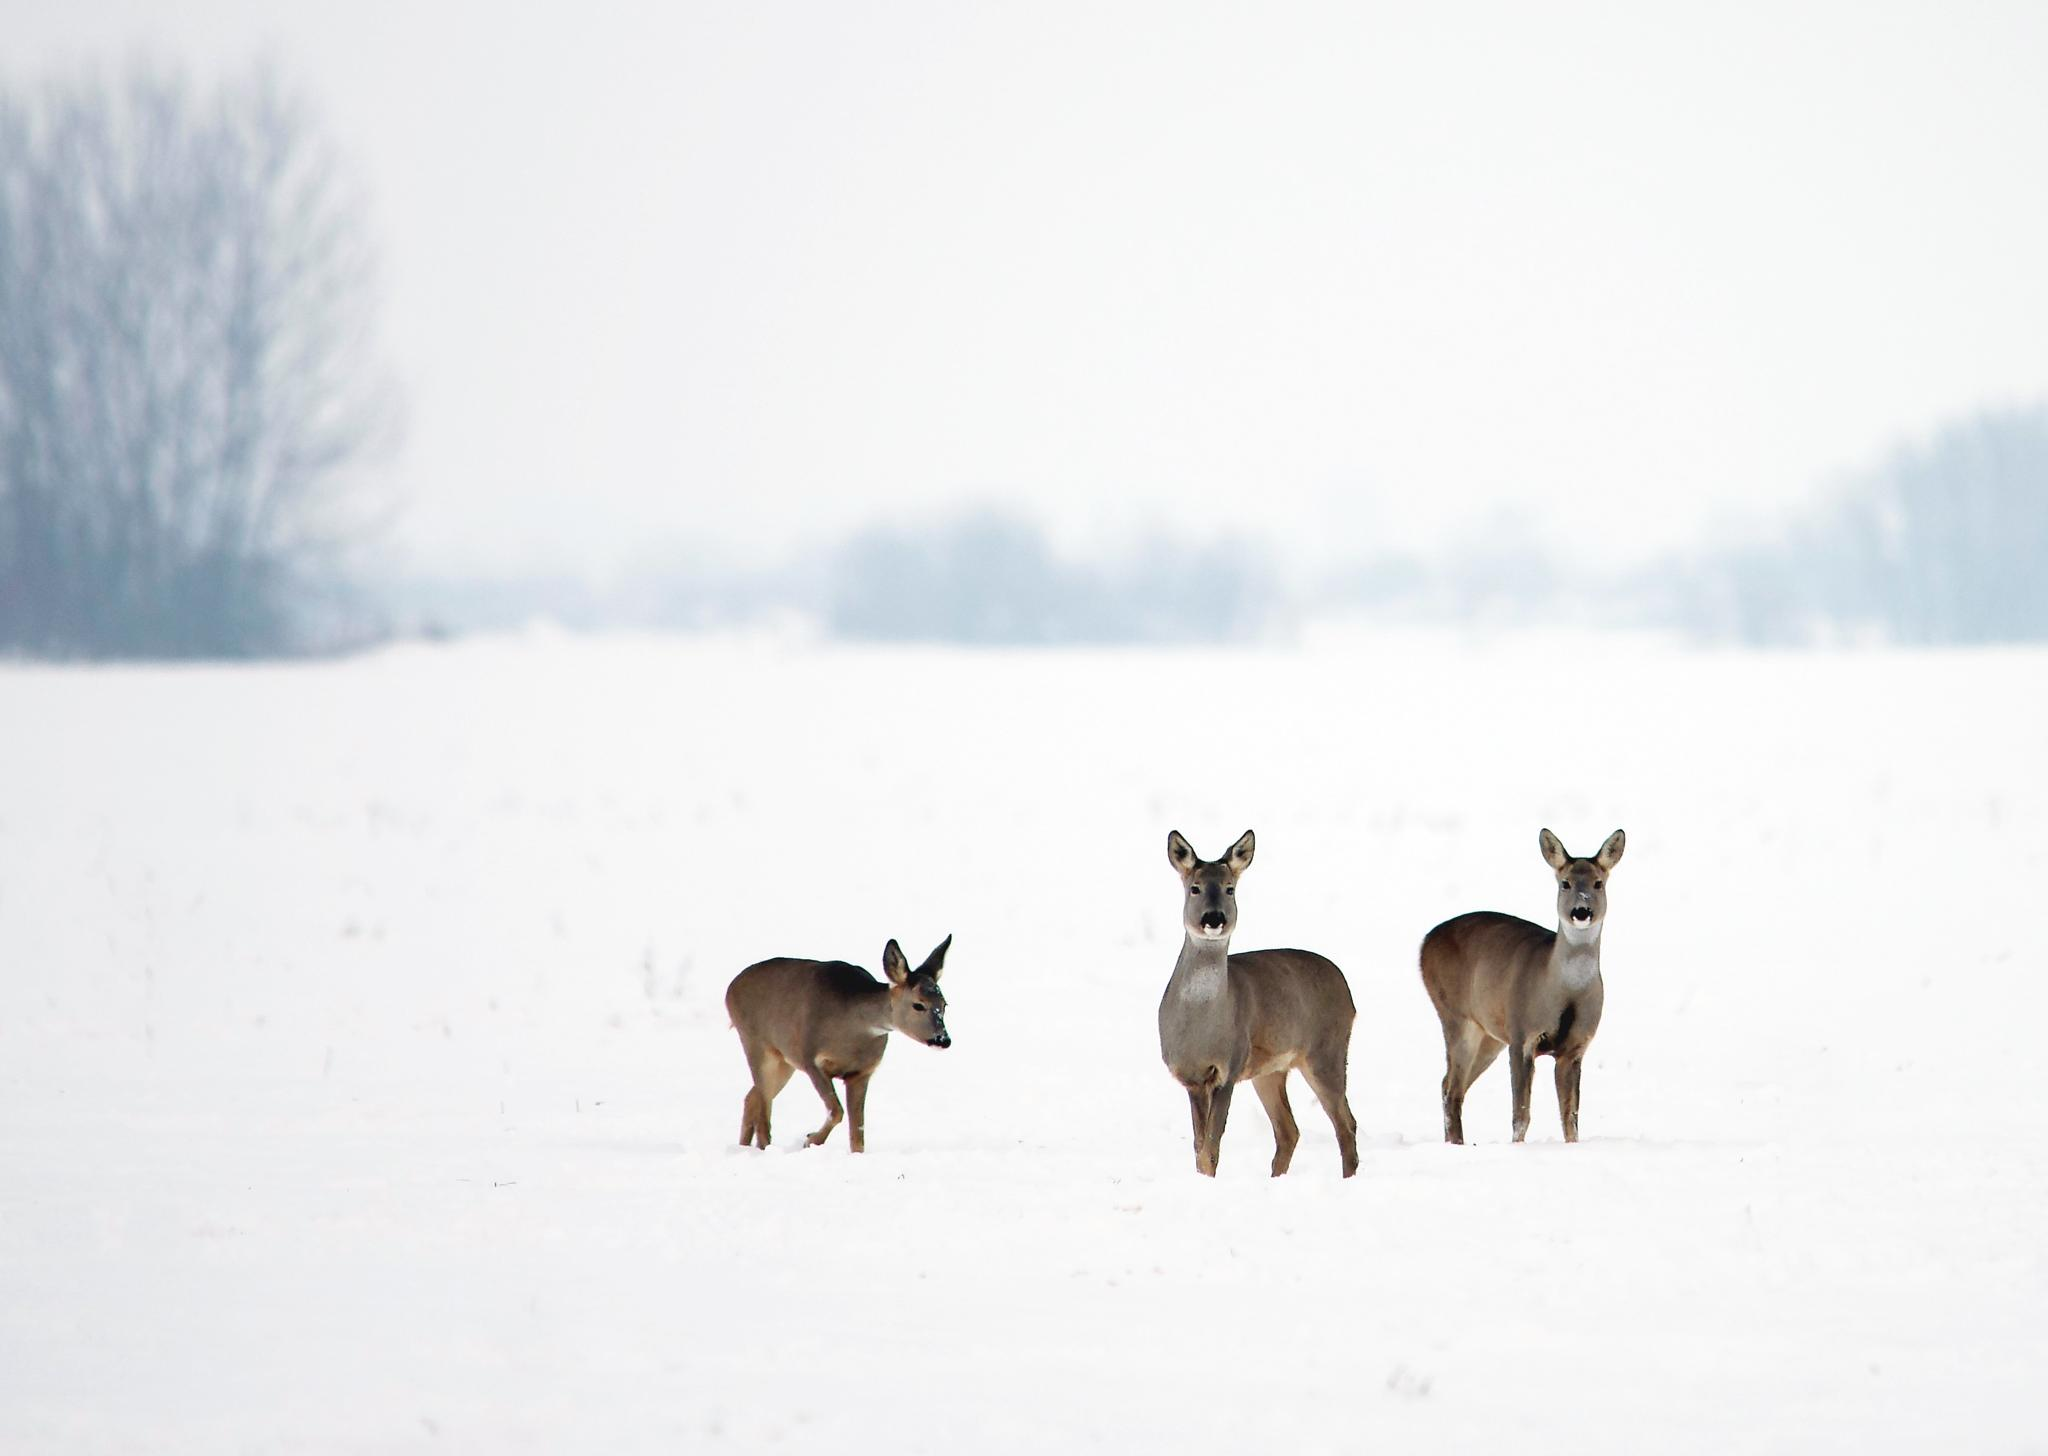 Roe deer by Zoran Rudec